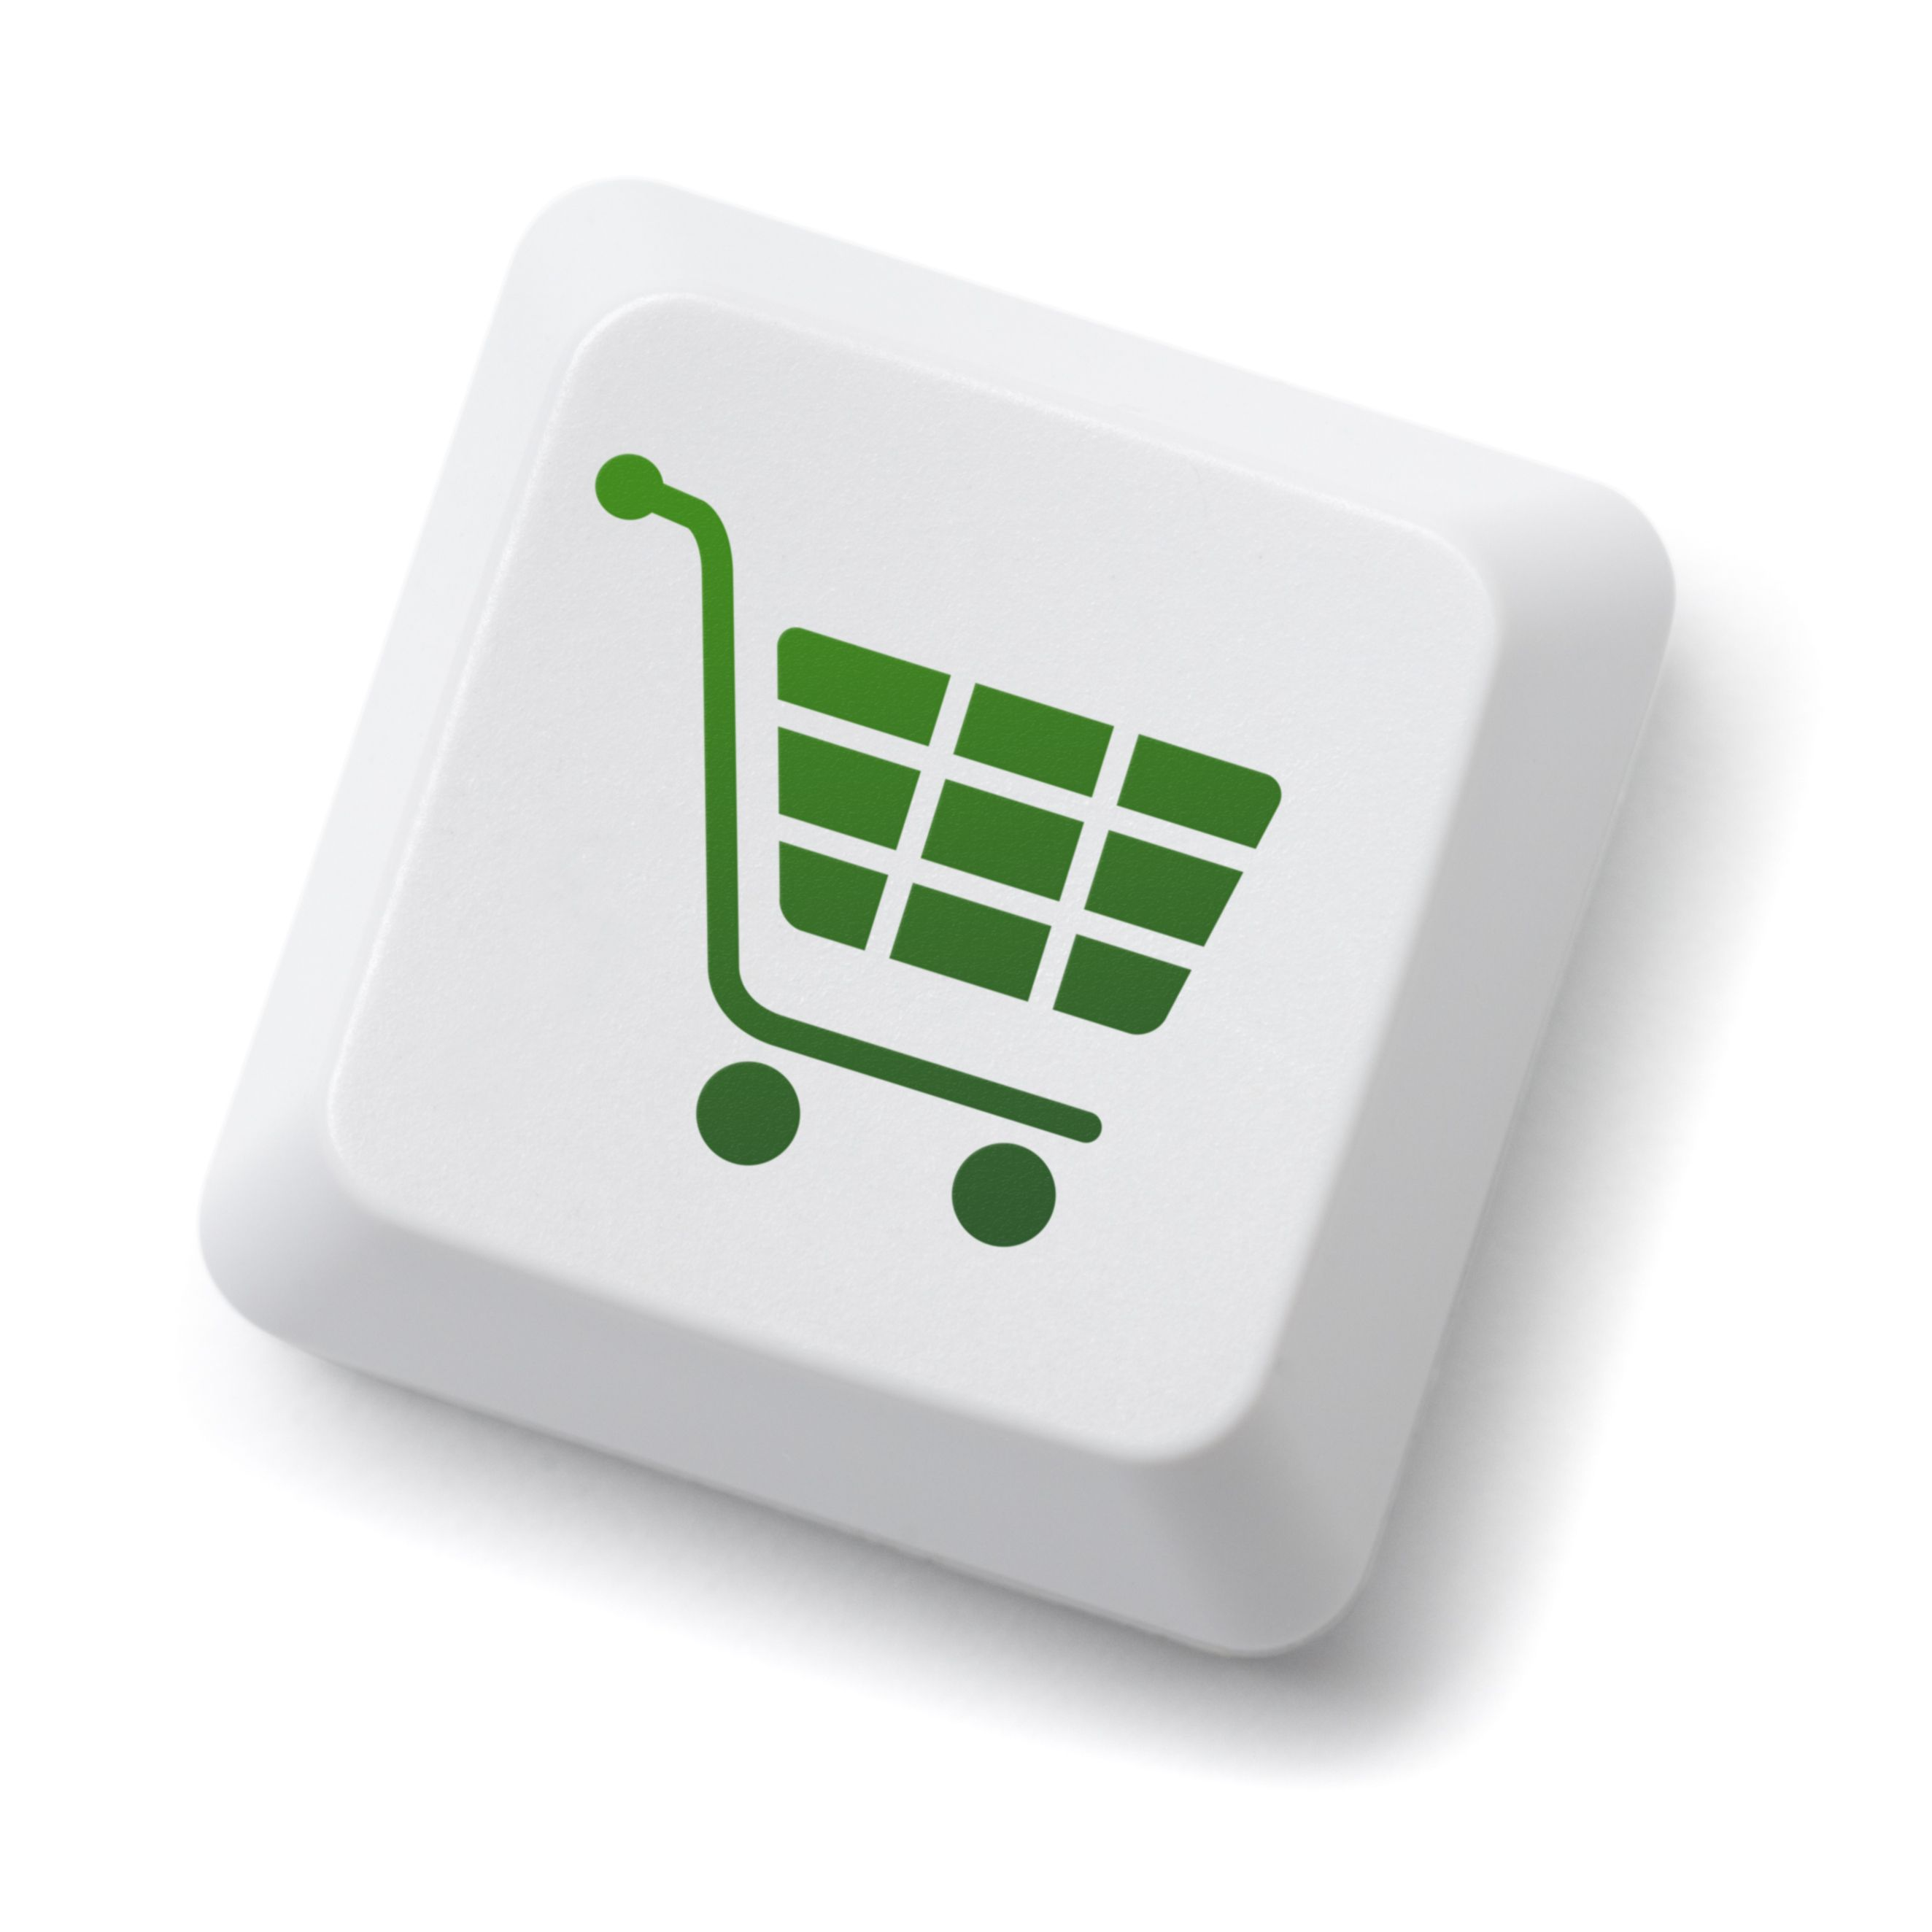 We can assist you with creating an Online Store to sell Digital or physical products which can range from a handful to thousands of products. We want to give you a full eCommerce platform to help you offer your customers a high quality shopping experience. #Web #Design and #Development in #Auckland #online #store #e-commerce